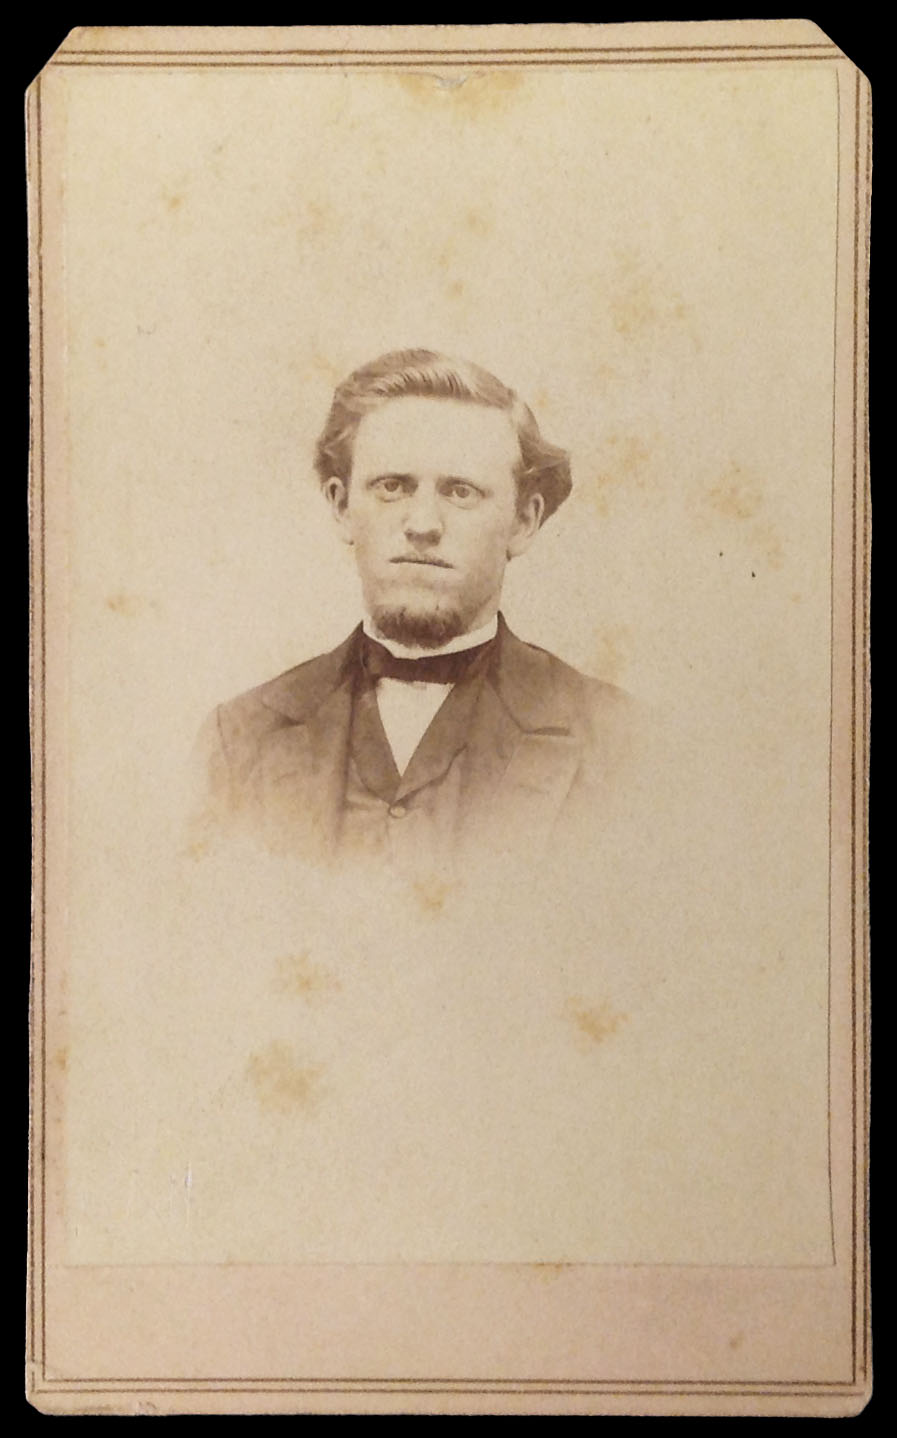 Photograph of William H. Stifler, 1867.